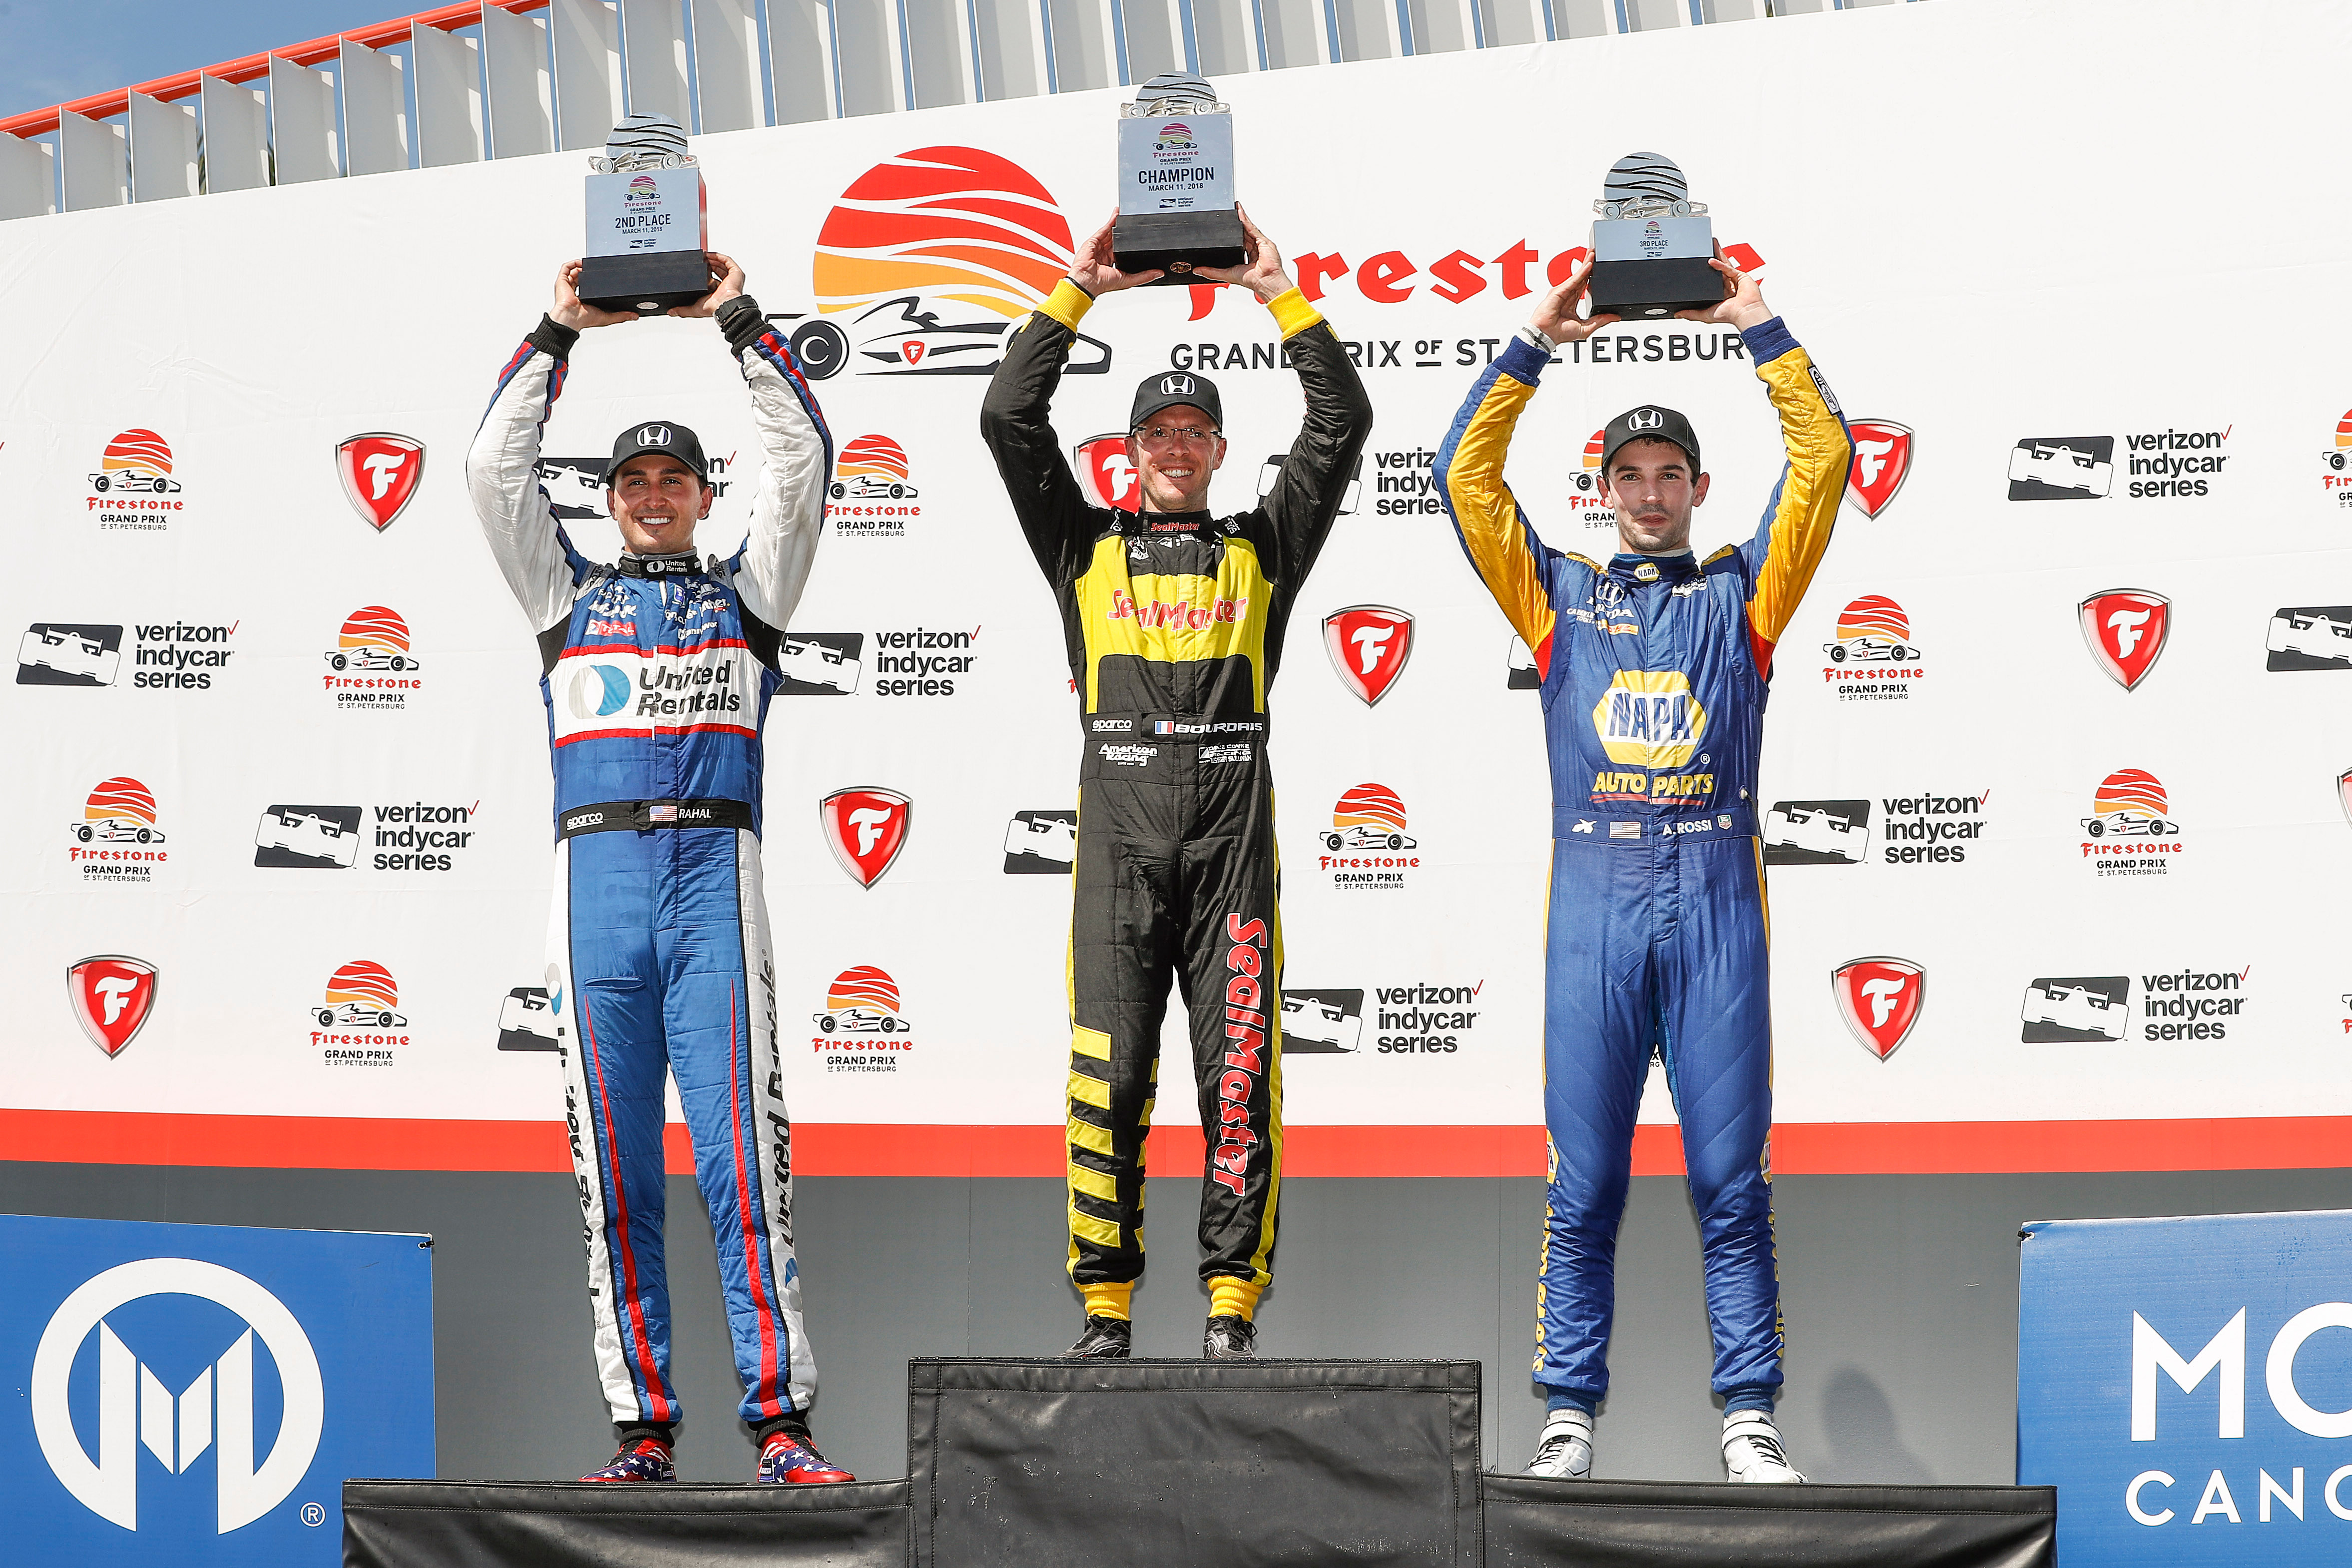 Honda drivers swept the St. Petersburg podium, with winner Sebas